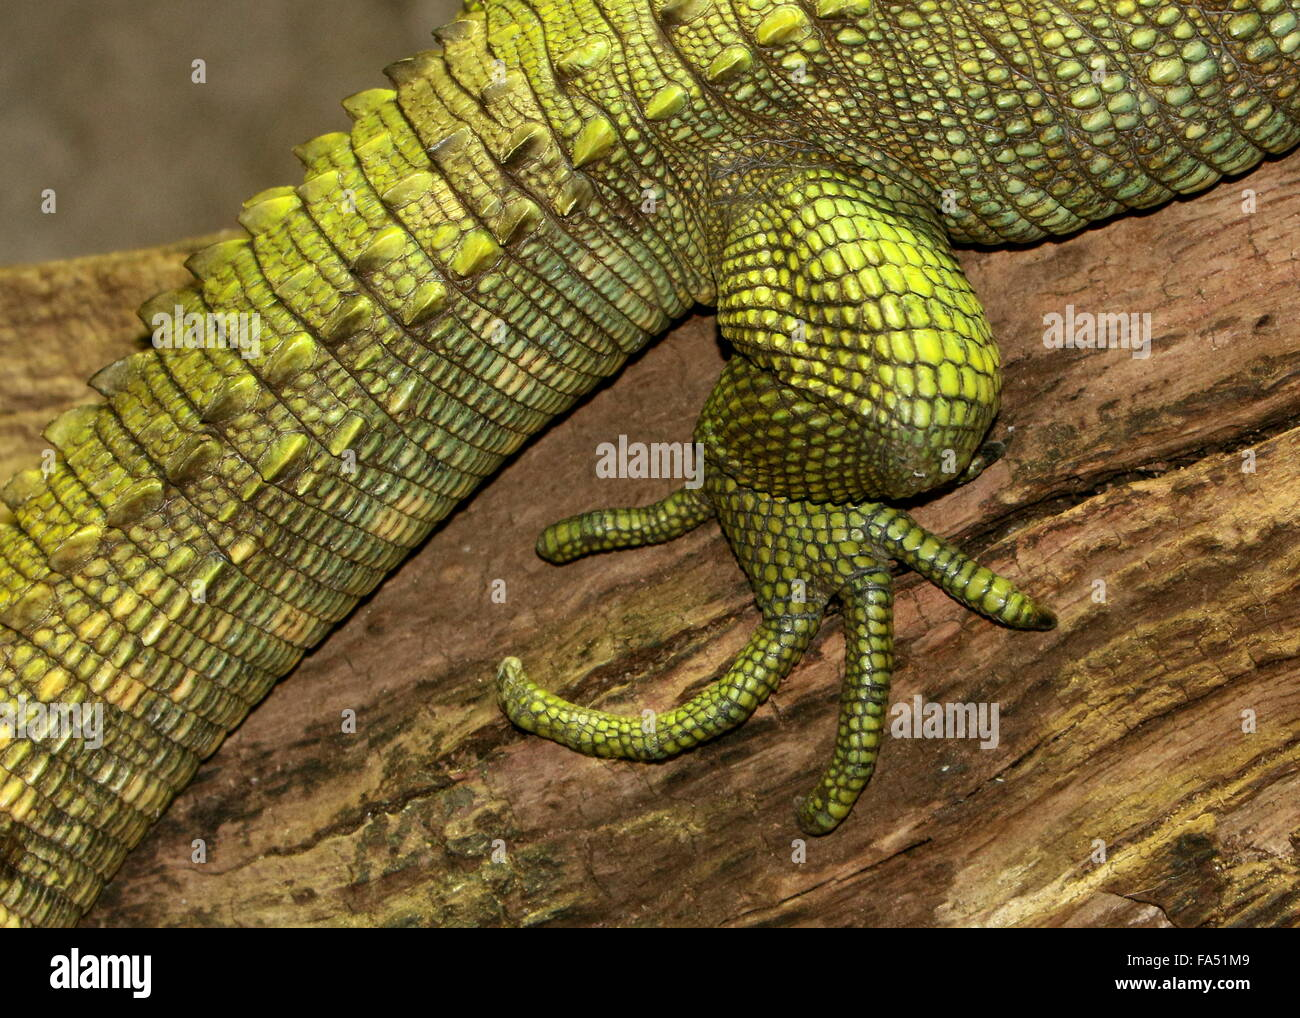 Claw on the hind leg of a South American Northern Caiman Lizard (Dracaena guianensis), a.k.a. Guianan Water Tegu - Stock Image